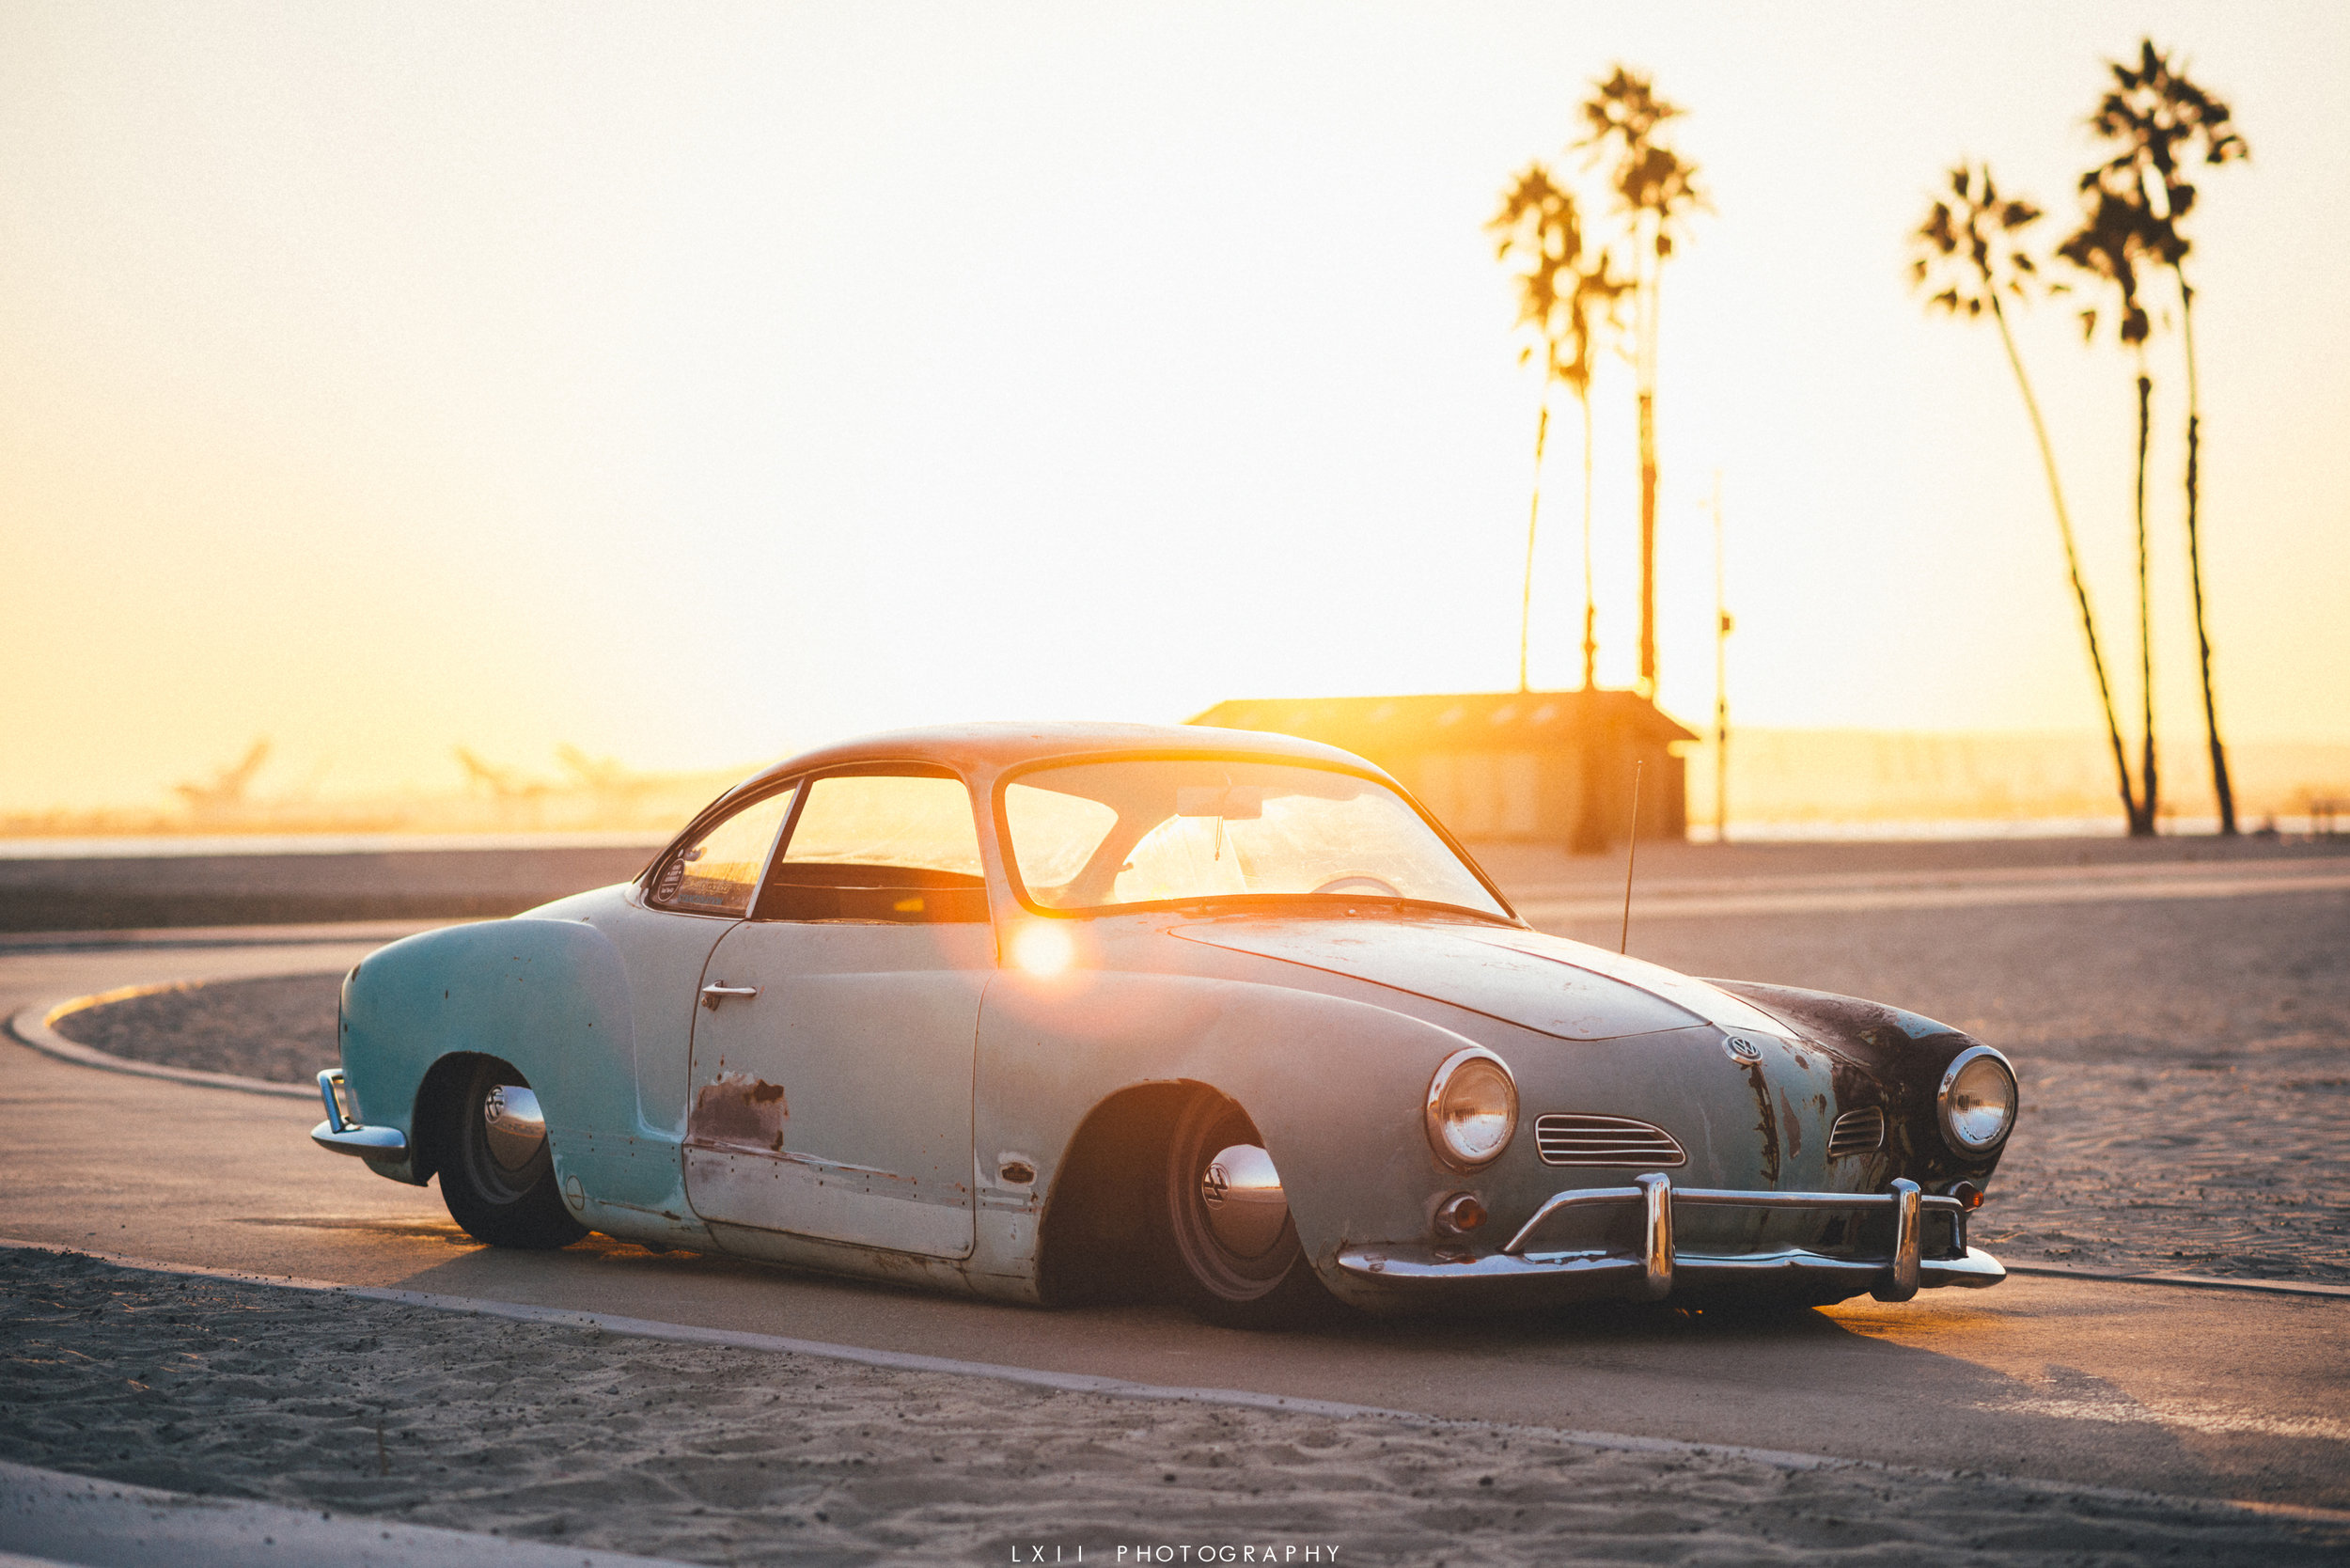 Scott's Karmann Ghia: Two Years Later